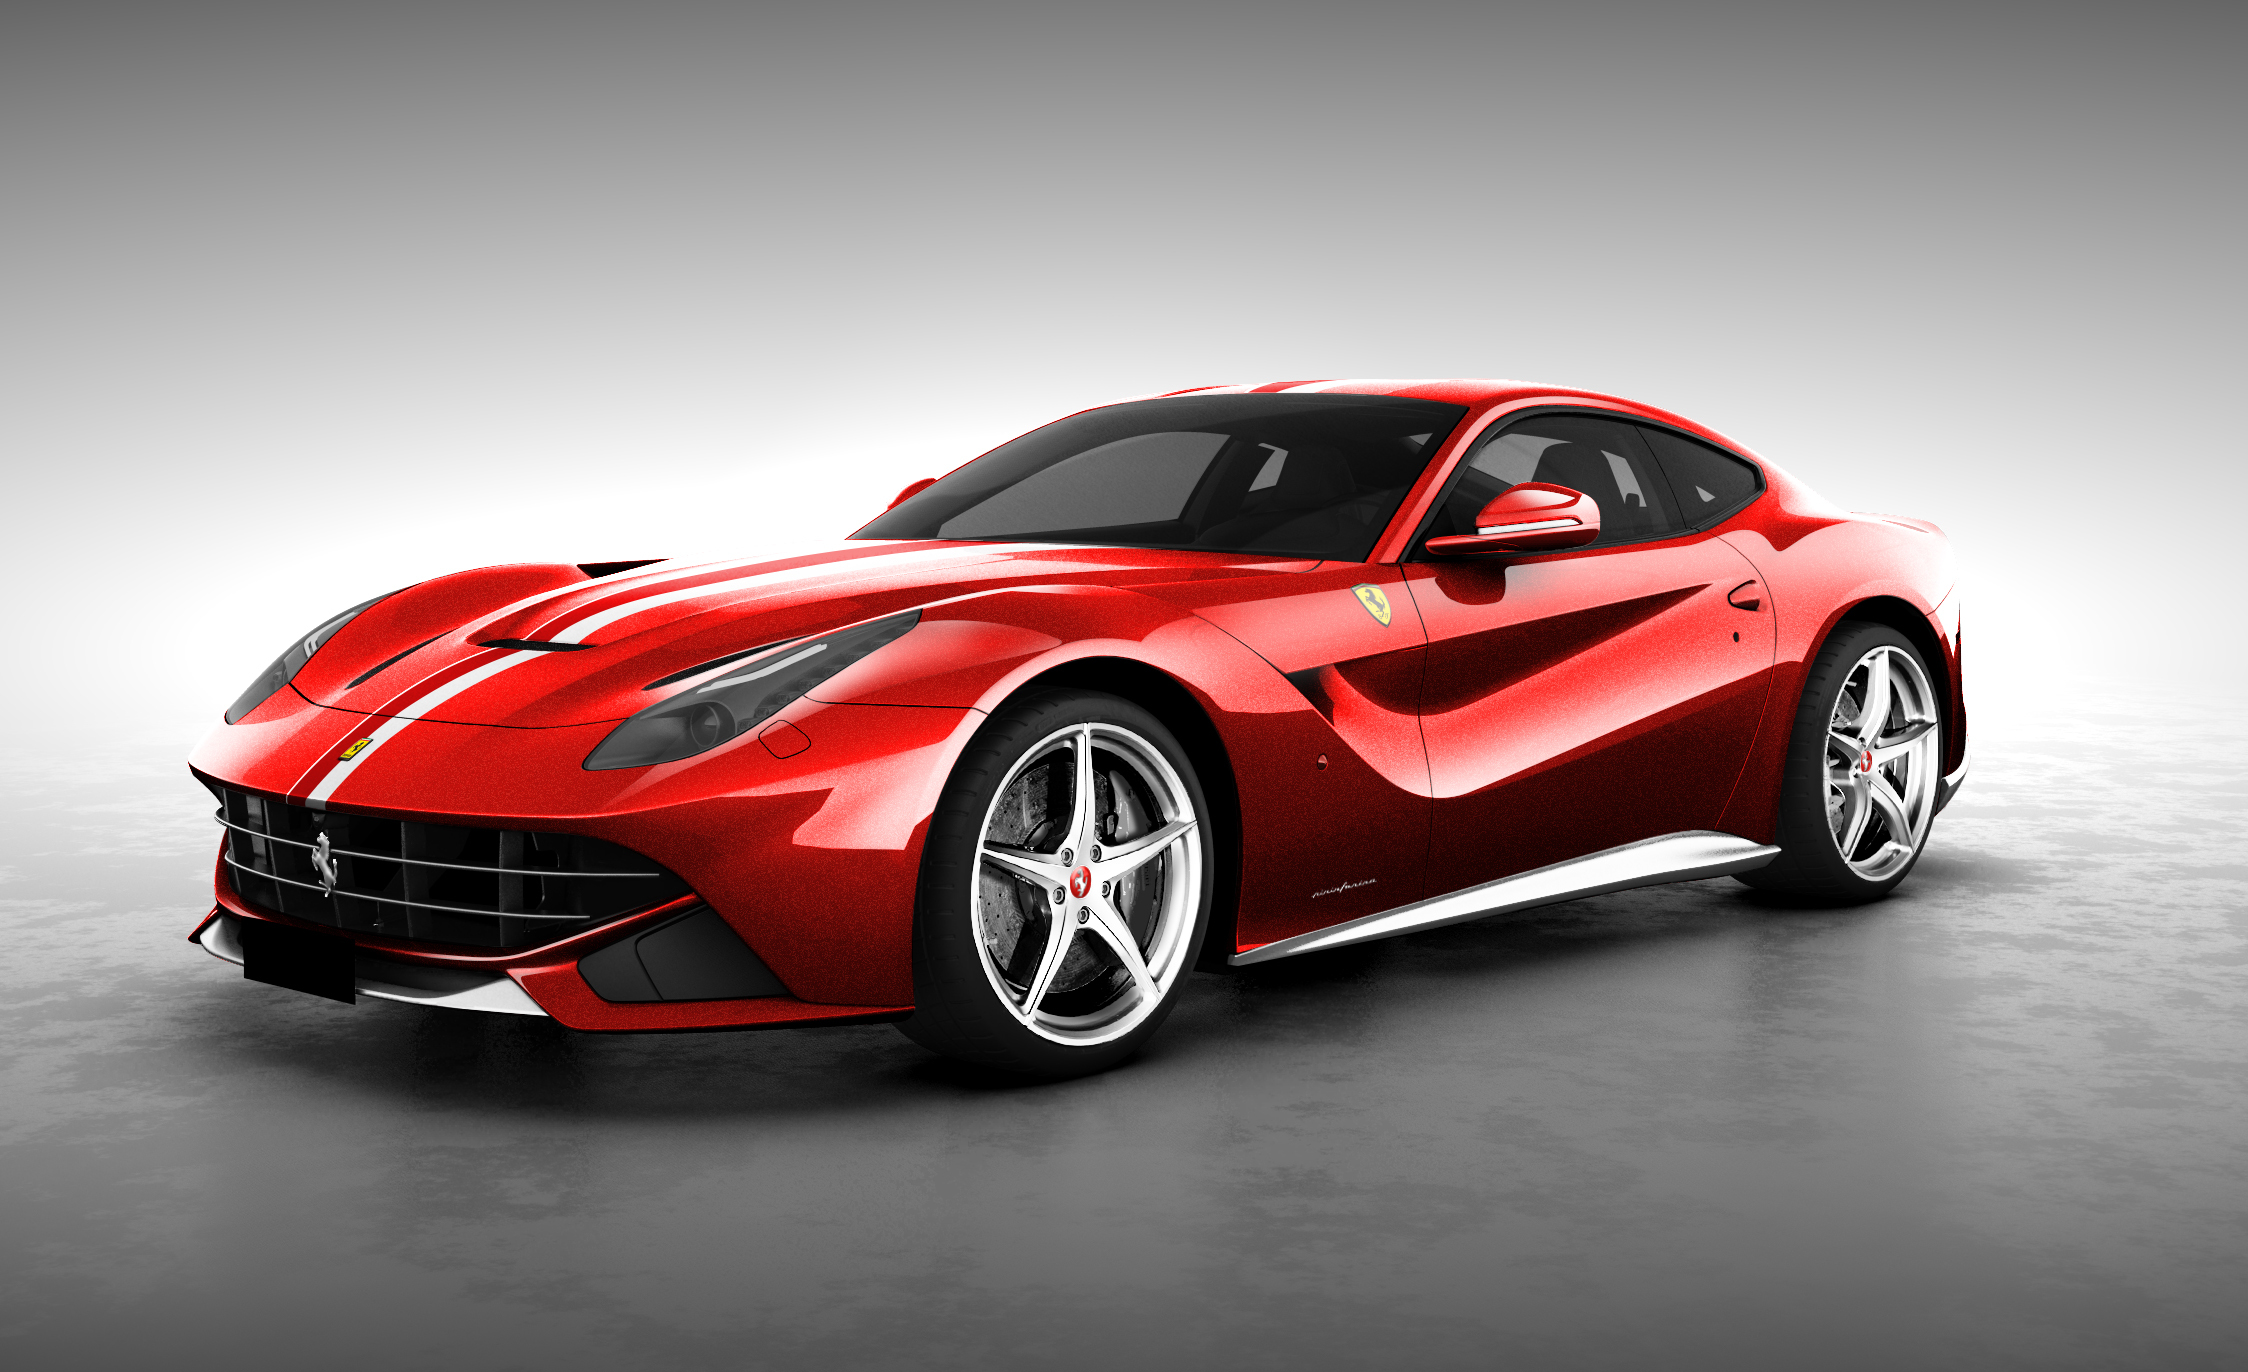 ferrari f12 berlinetta sg50 celebrates singapore's independence